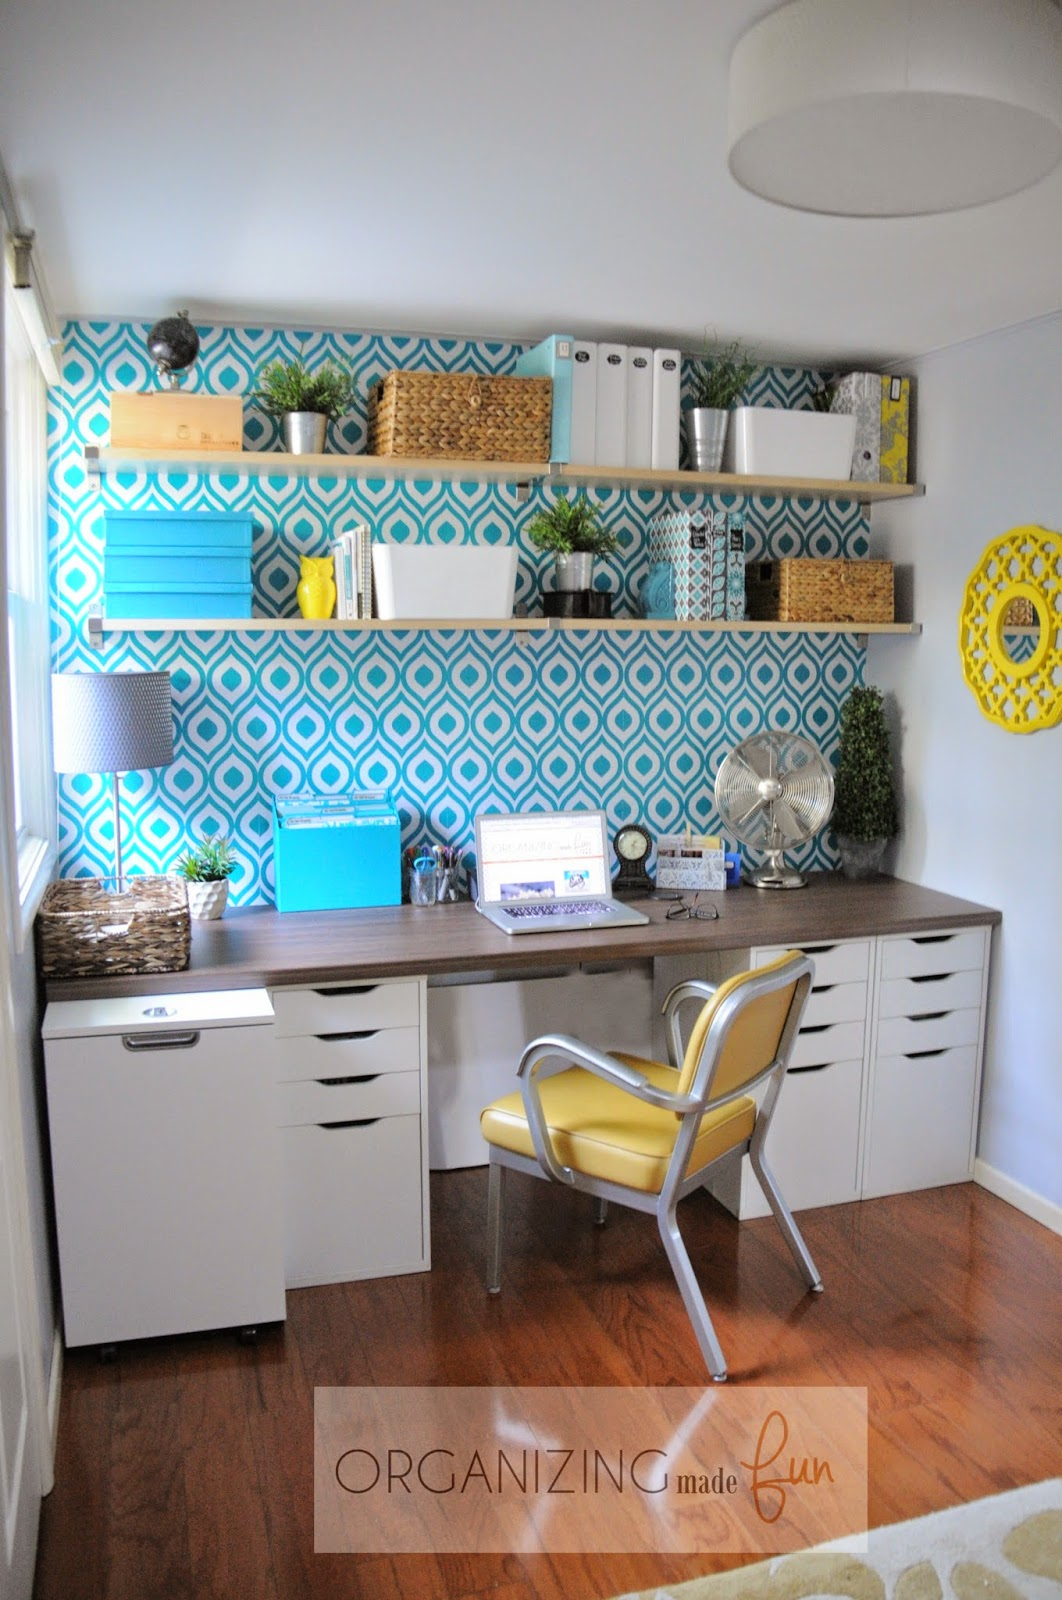 Amazing home office filled with color and texture :: OrganizingMadeFun.com